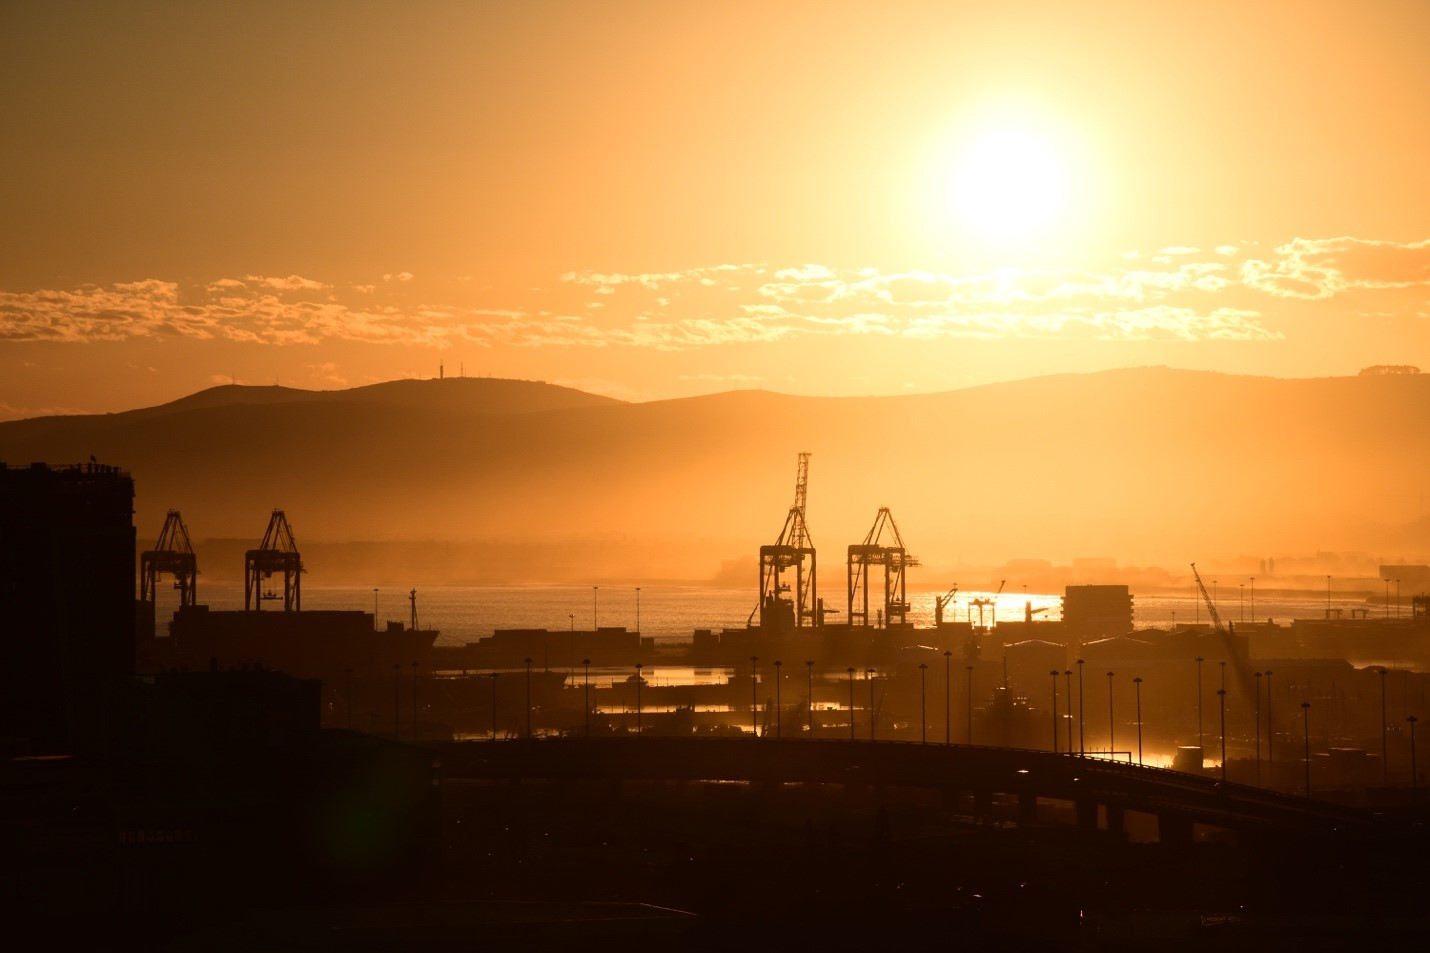 Sunrise over Cape Town's waterfront. Photo courtesy of Adam Yates.